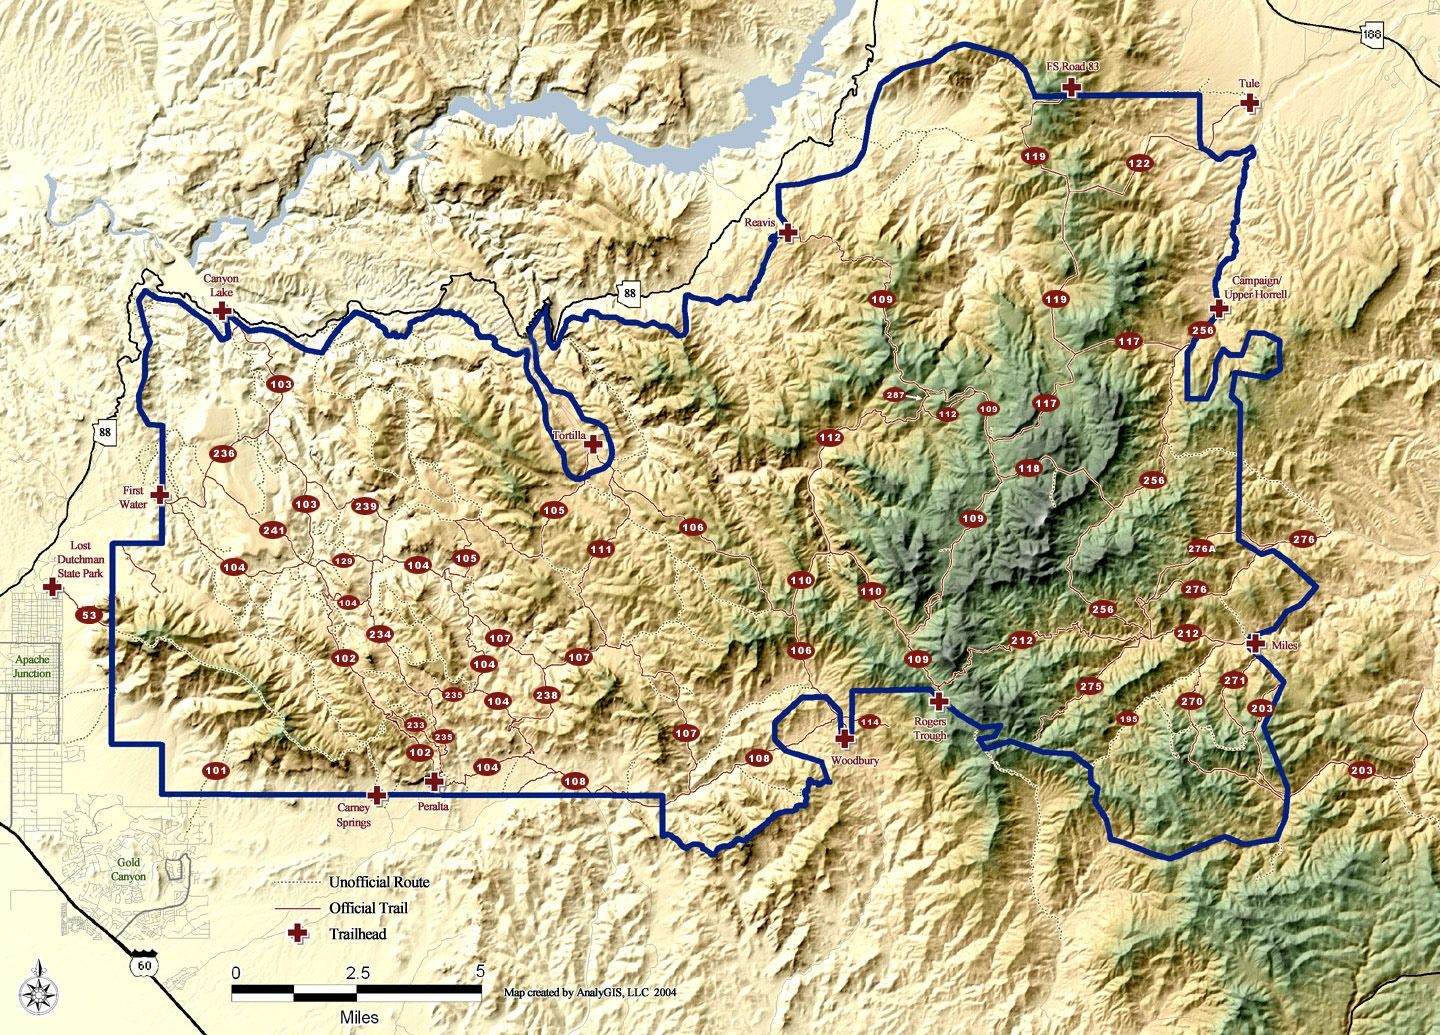 Map of the Superstition Wilderness area   Hiking   Pinterest